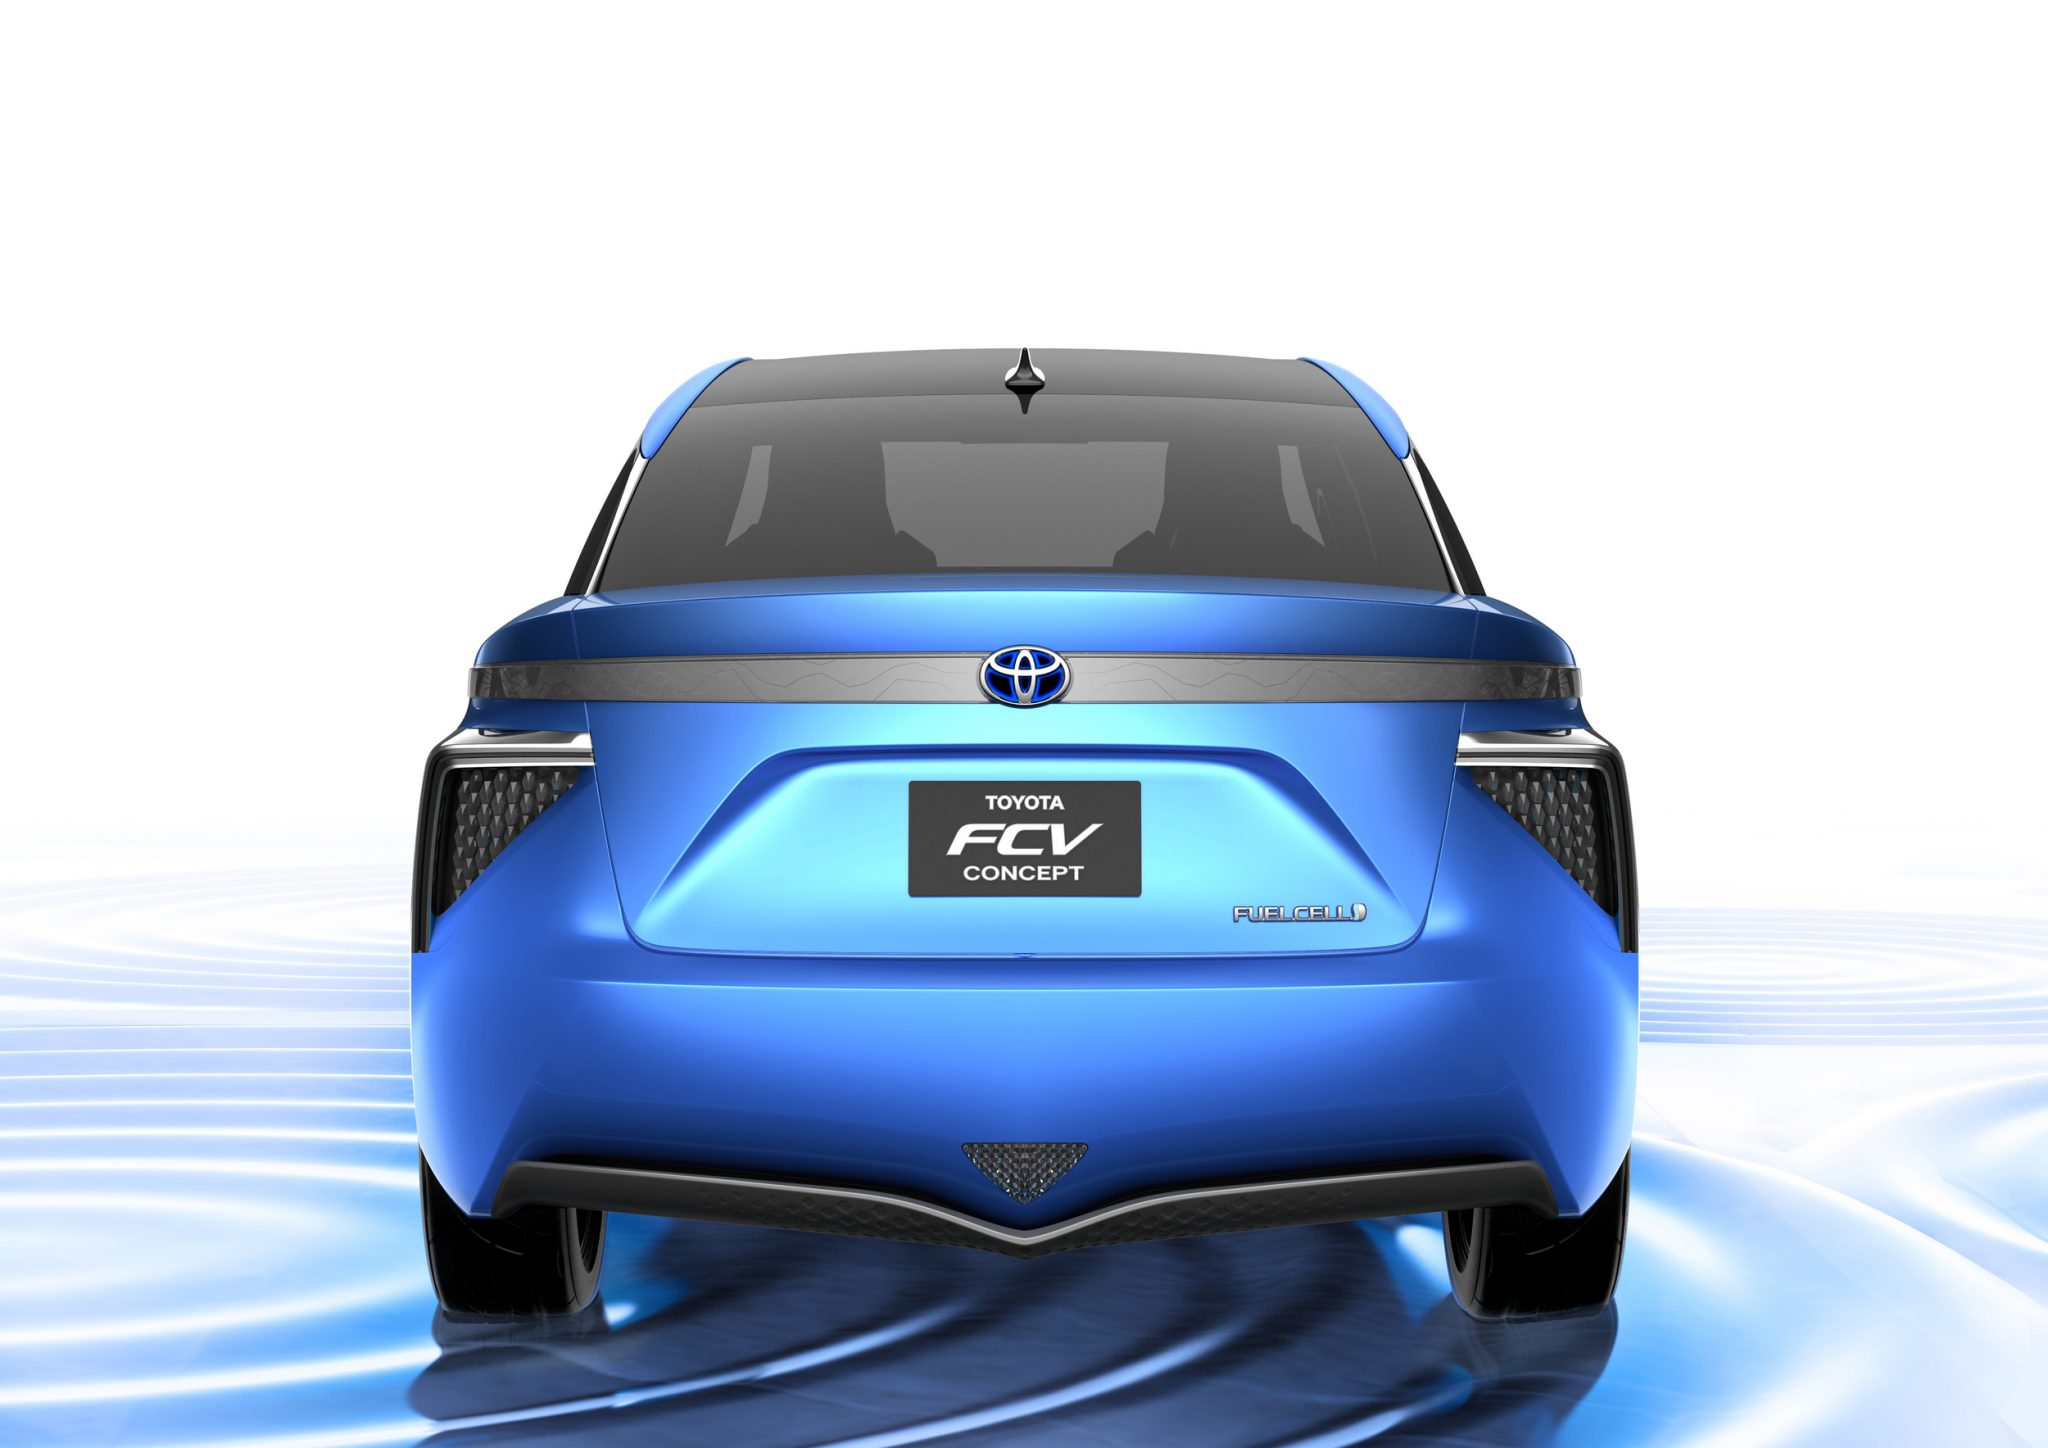 toyota-fuel-cell-vehicle-3-1